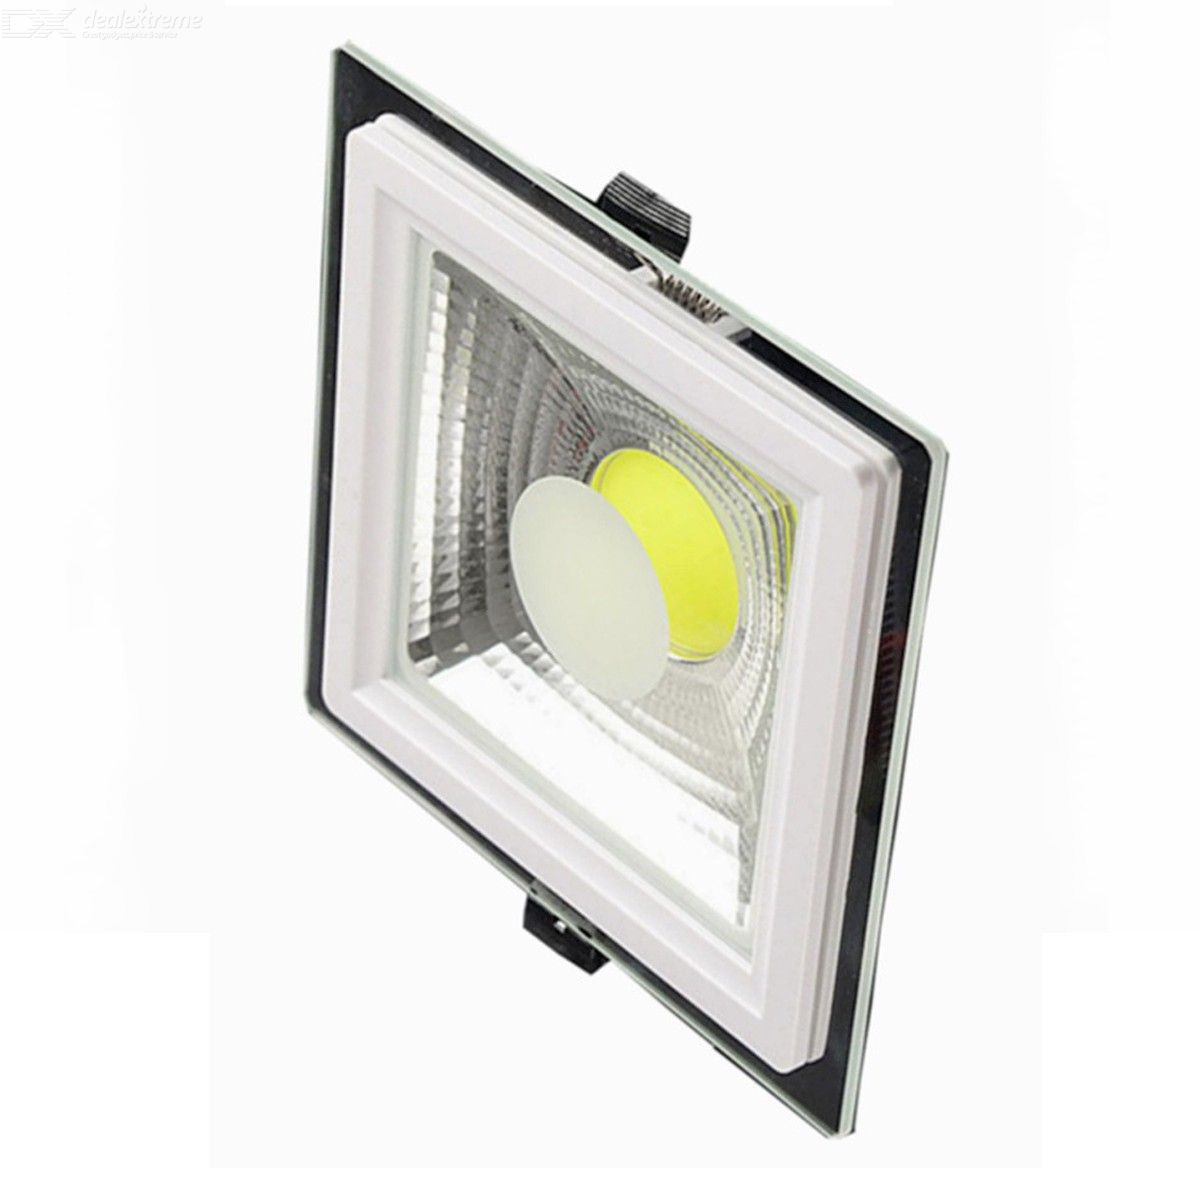 DIMMABLE Square Shell 5W 10W 15W Led COB Panel Lights Warm White Cold White 120 Beam Angle + Drivers White body